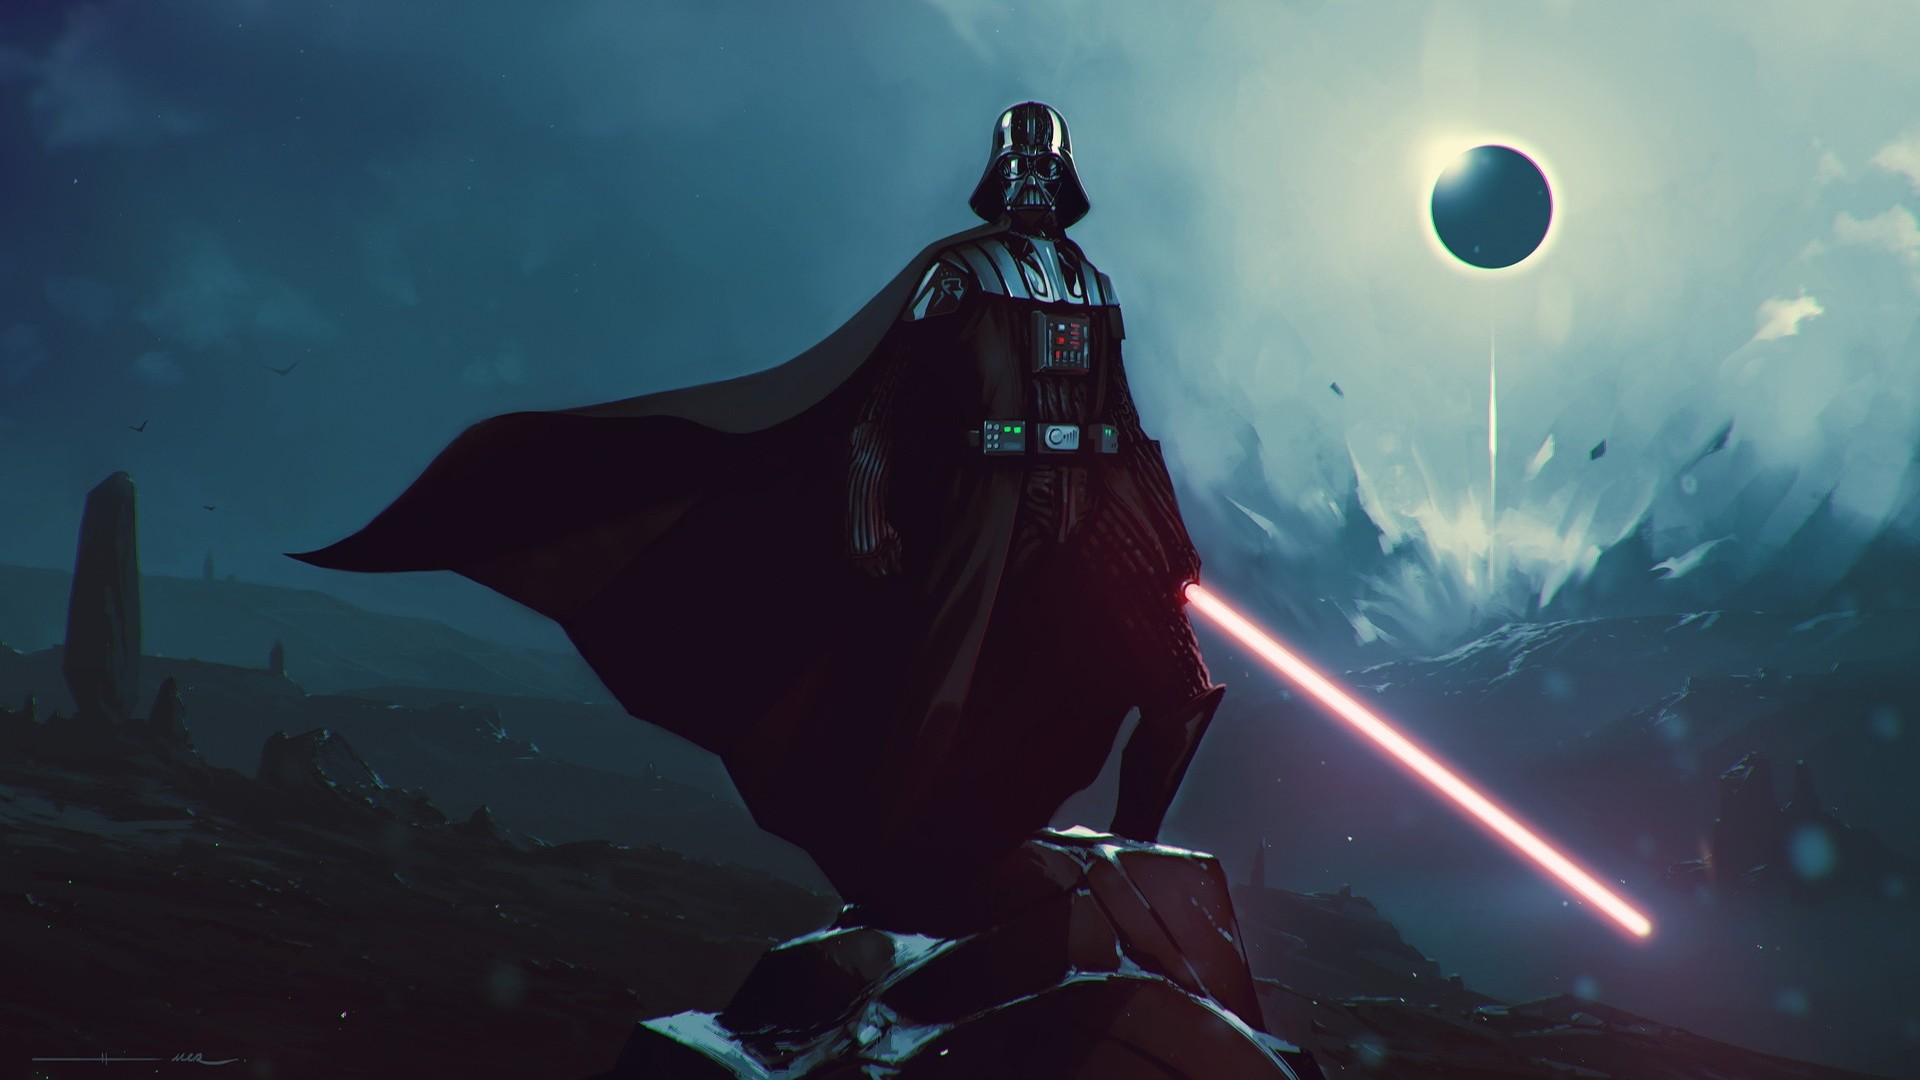 Darth Vader Wallpaper For Pc